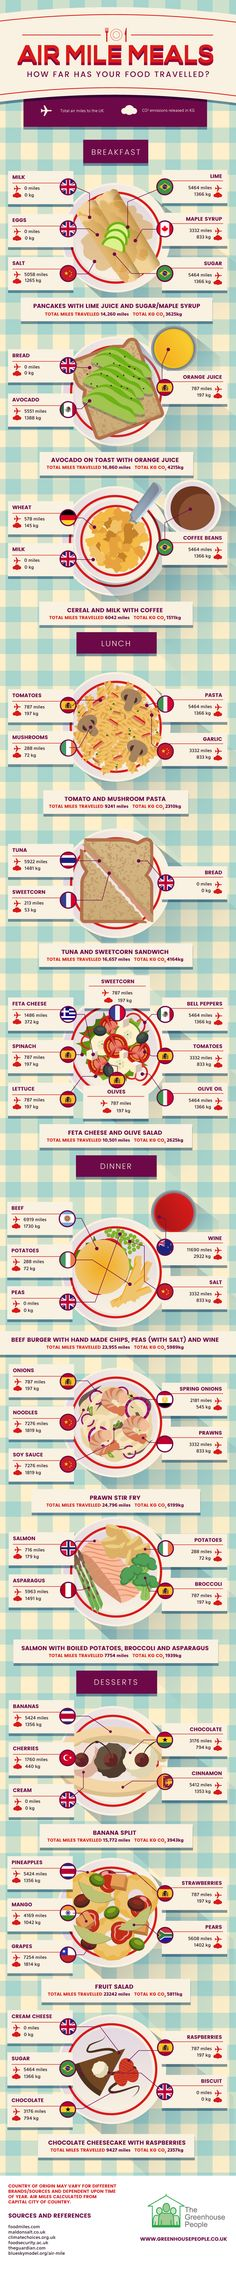 Air Mile Meals - How Far Has Your Food Travelled? #Infographic #Food #Travel